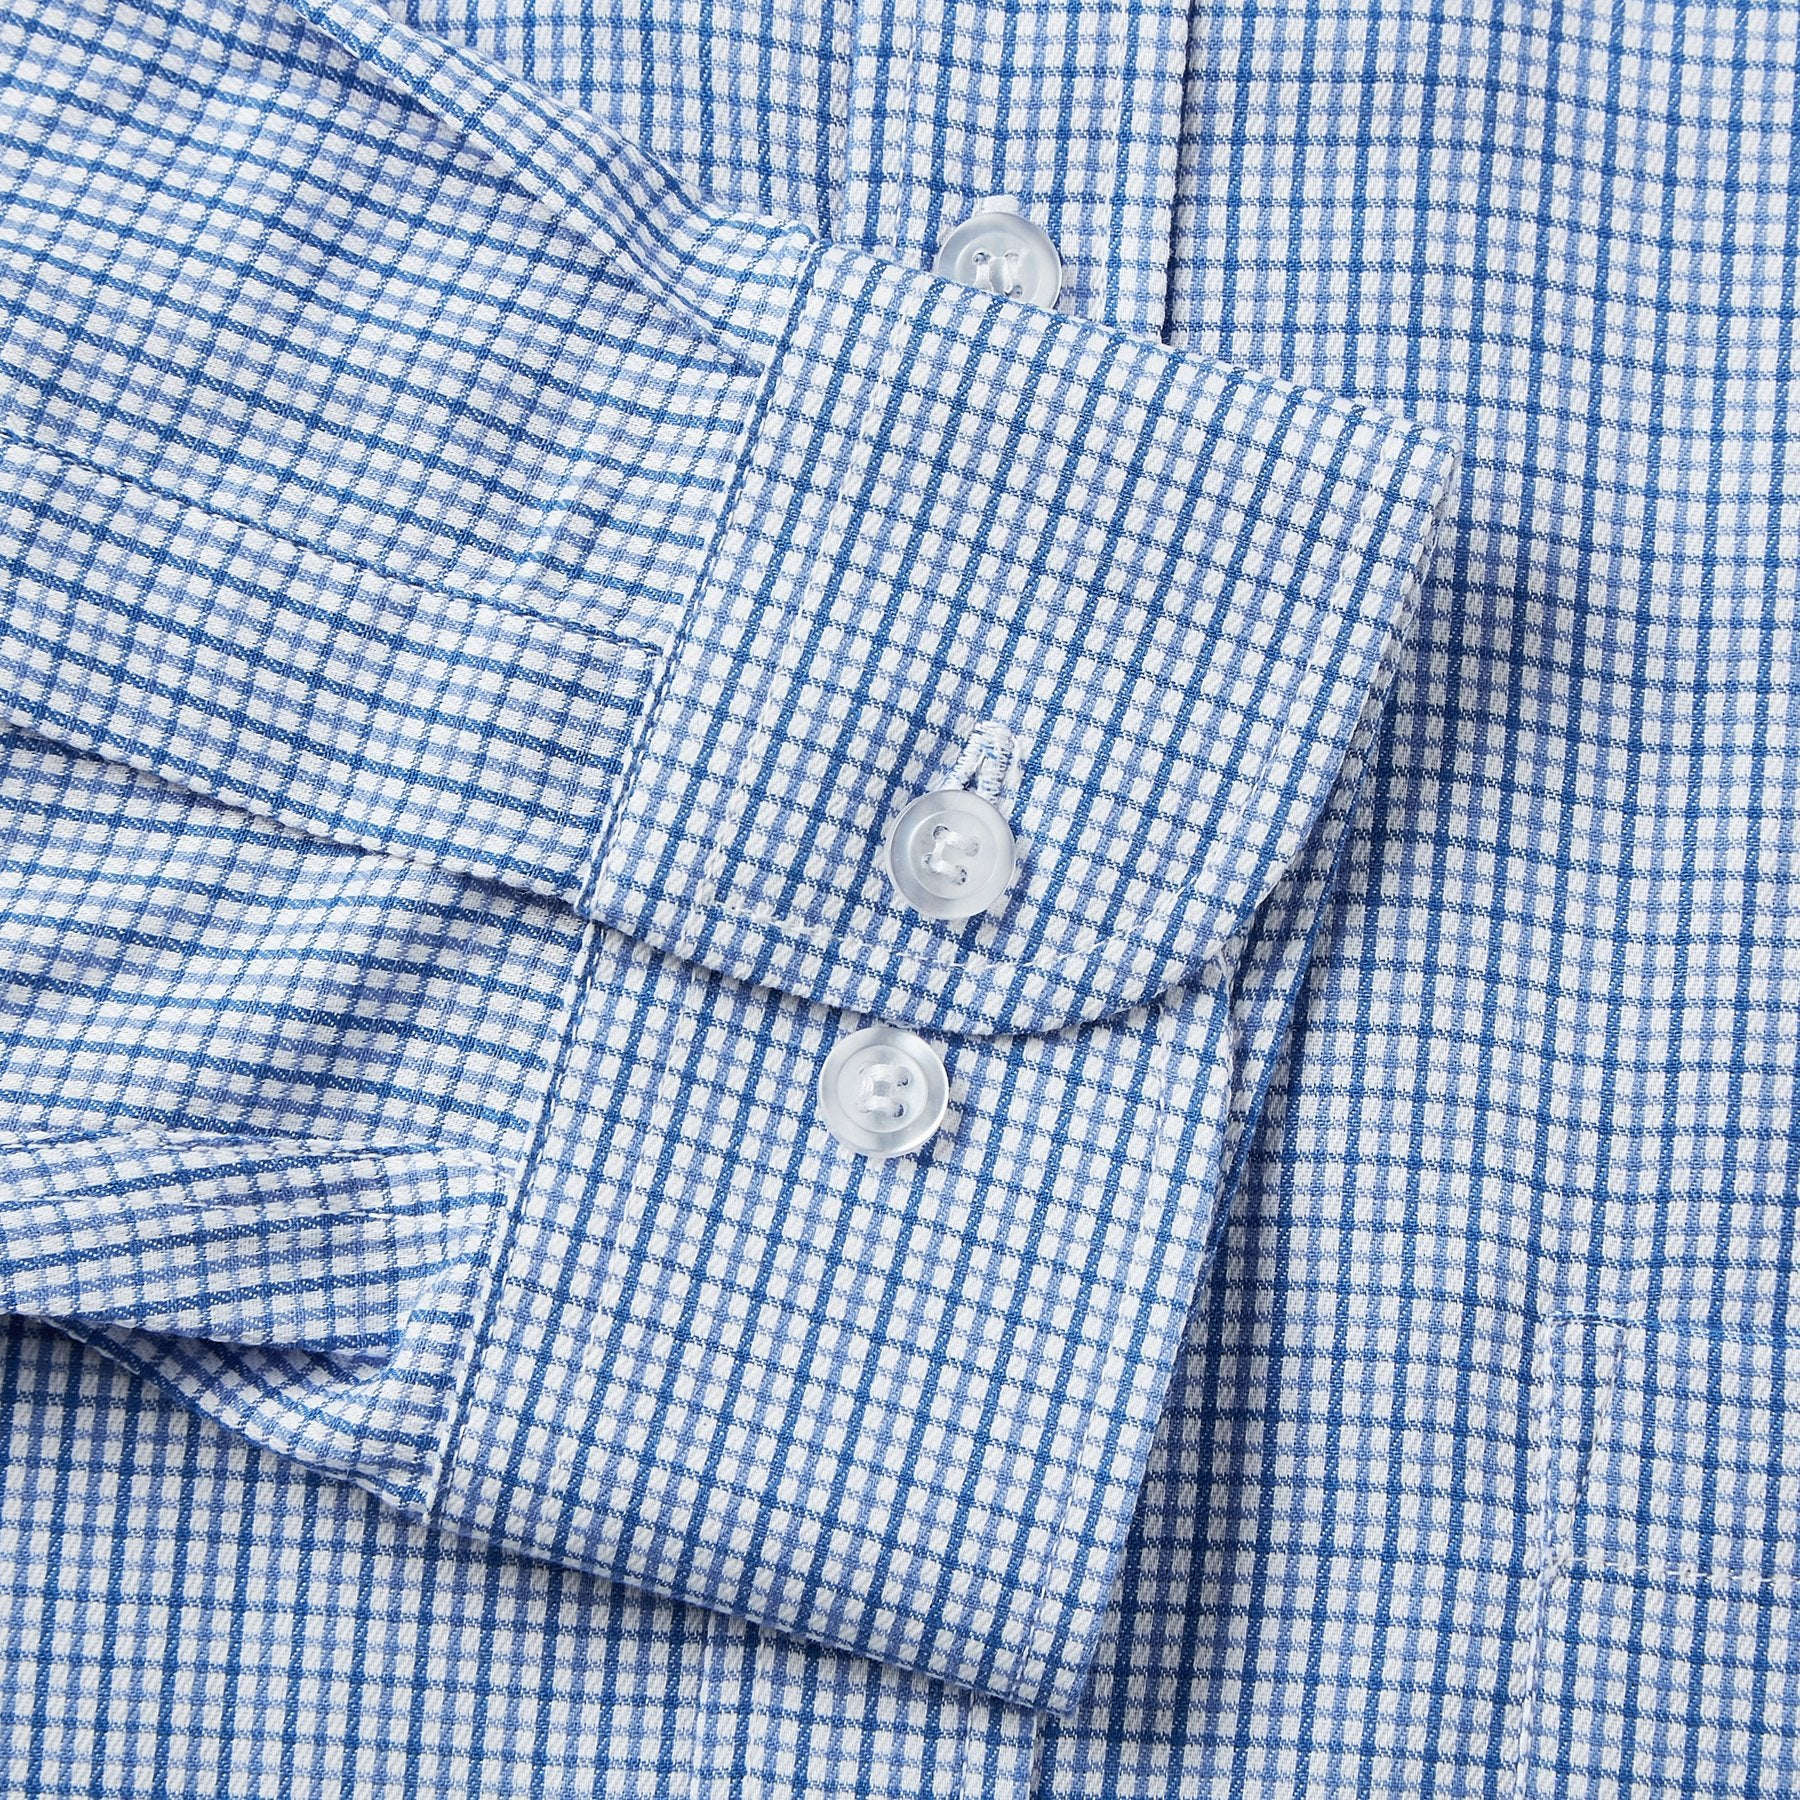 9041-Rael-Brook-Classic-Fit-Blue-Micro-Check-Single-Cuff-Shirt-3